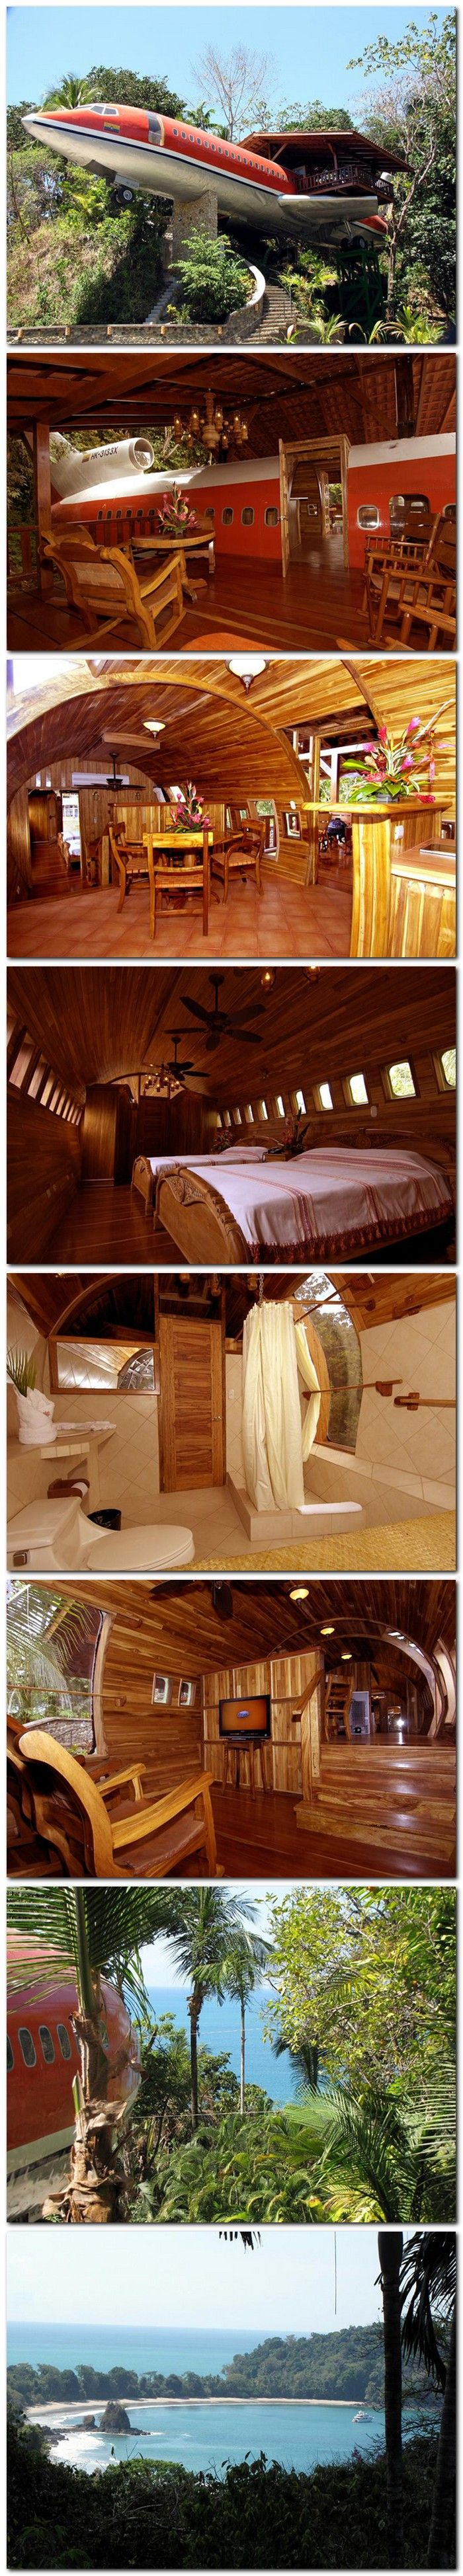 Decommissioned Boeing 727 Airplane Hotel Room in Costa Rica